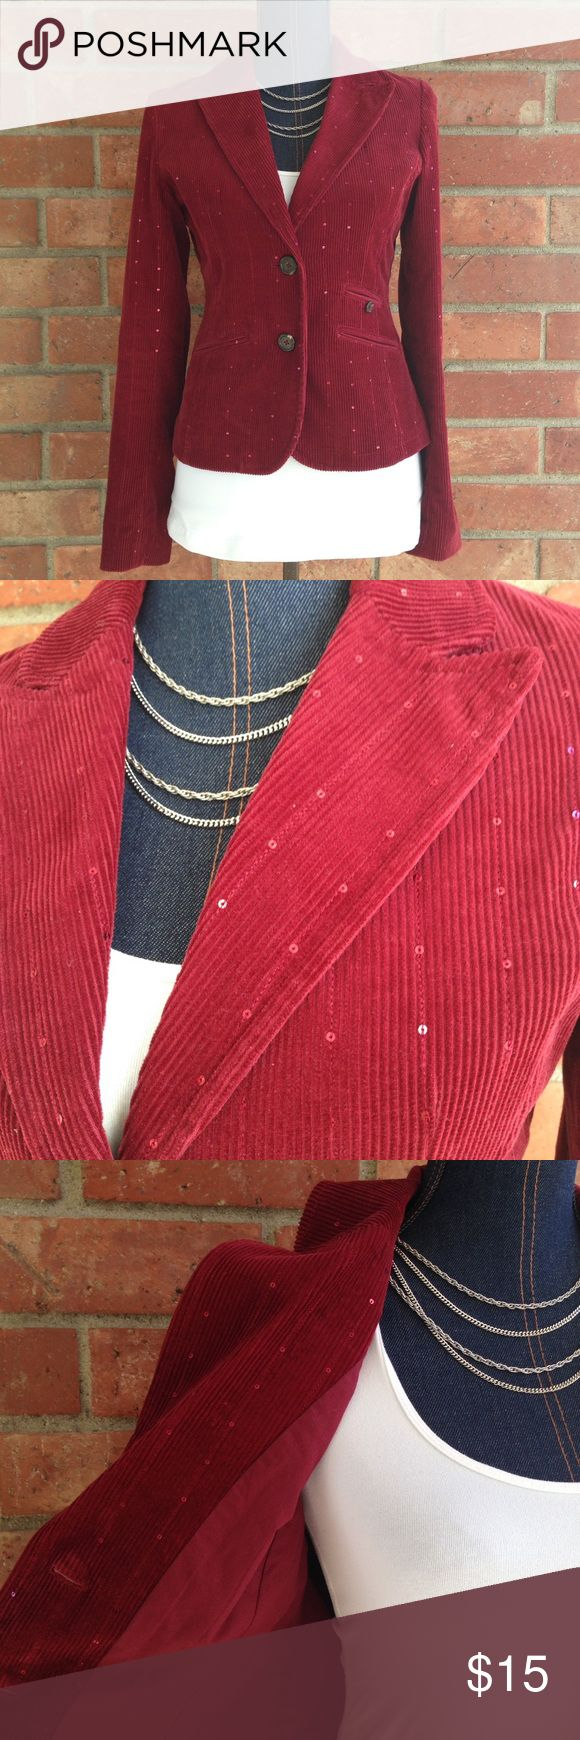 American Eagle Corduroy Sequin Blazer If you're looking for a festive holiday Blazer this may be for you! Color: burgundy red. Size S/P Pair it with some skinny jeans and heels American Eagle Outfitters Jackets & Coats Blazers